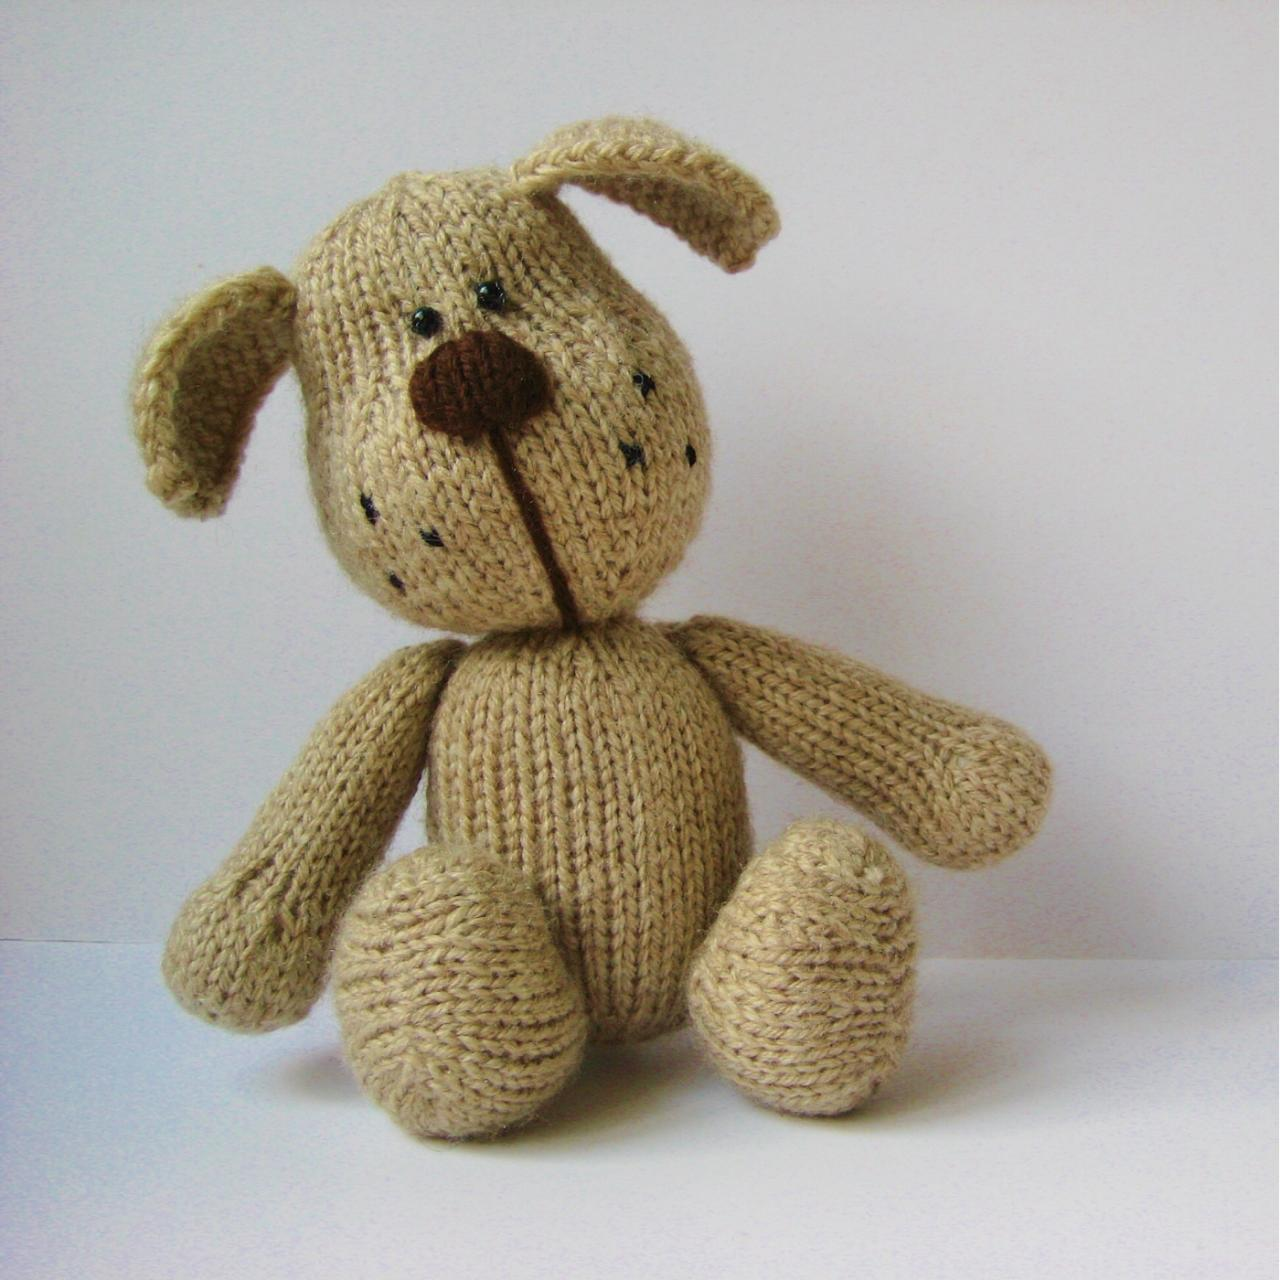 Knitting Patterns Plush Toys : Bernie The Dog Toy Knitting Pattern on Luulla